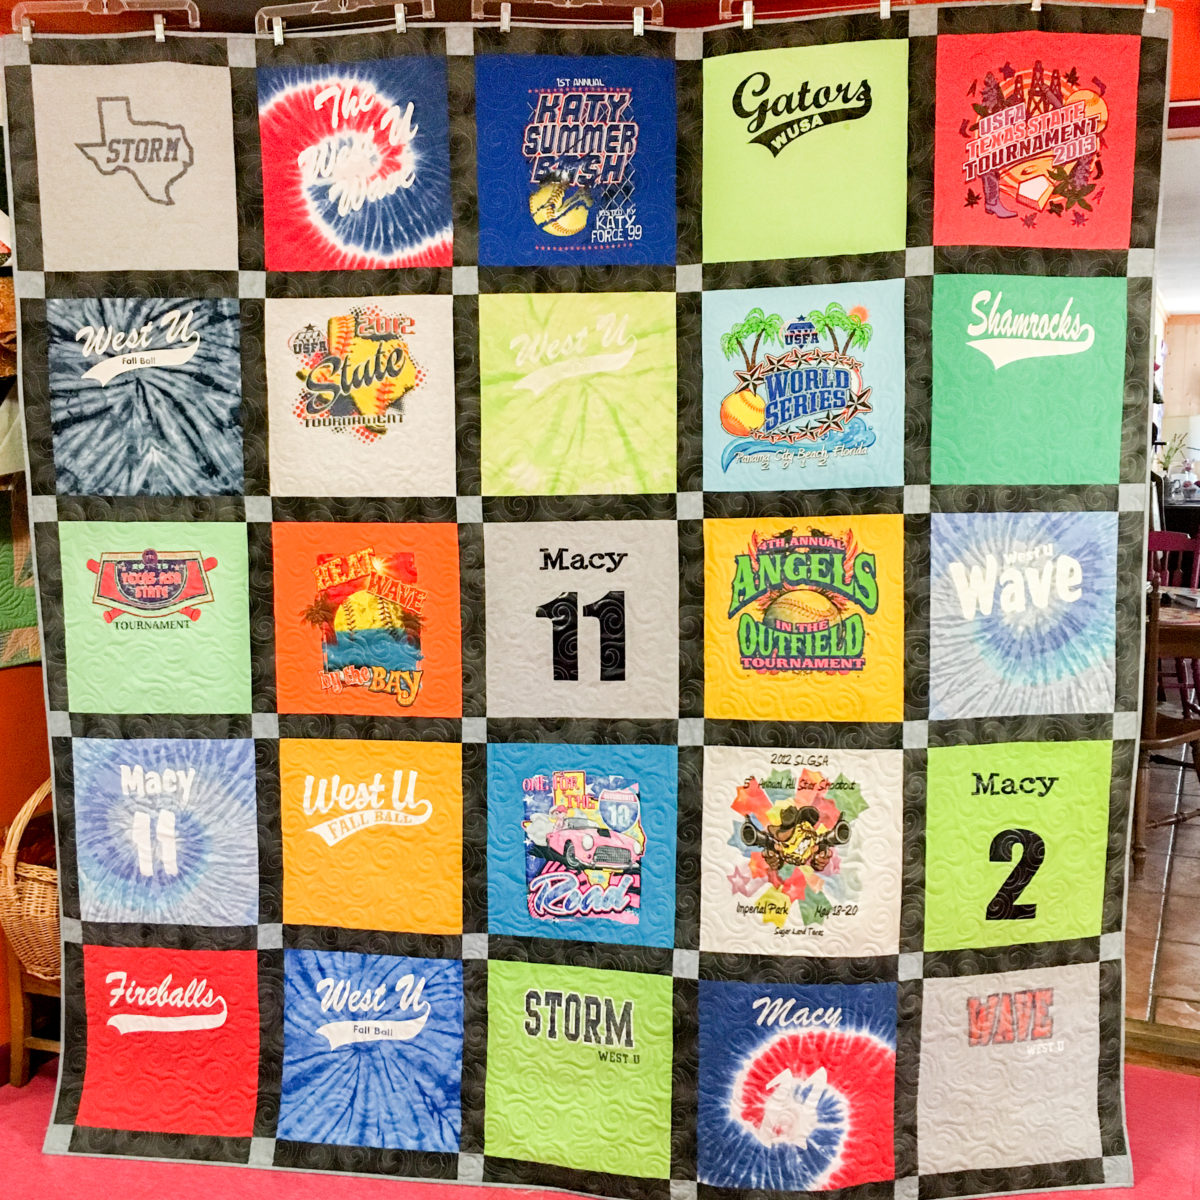 This is a T-Shirt quilts made from Little league baseball T-Shirts the quilt is made by The Quilt Rambler